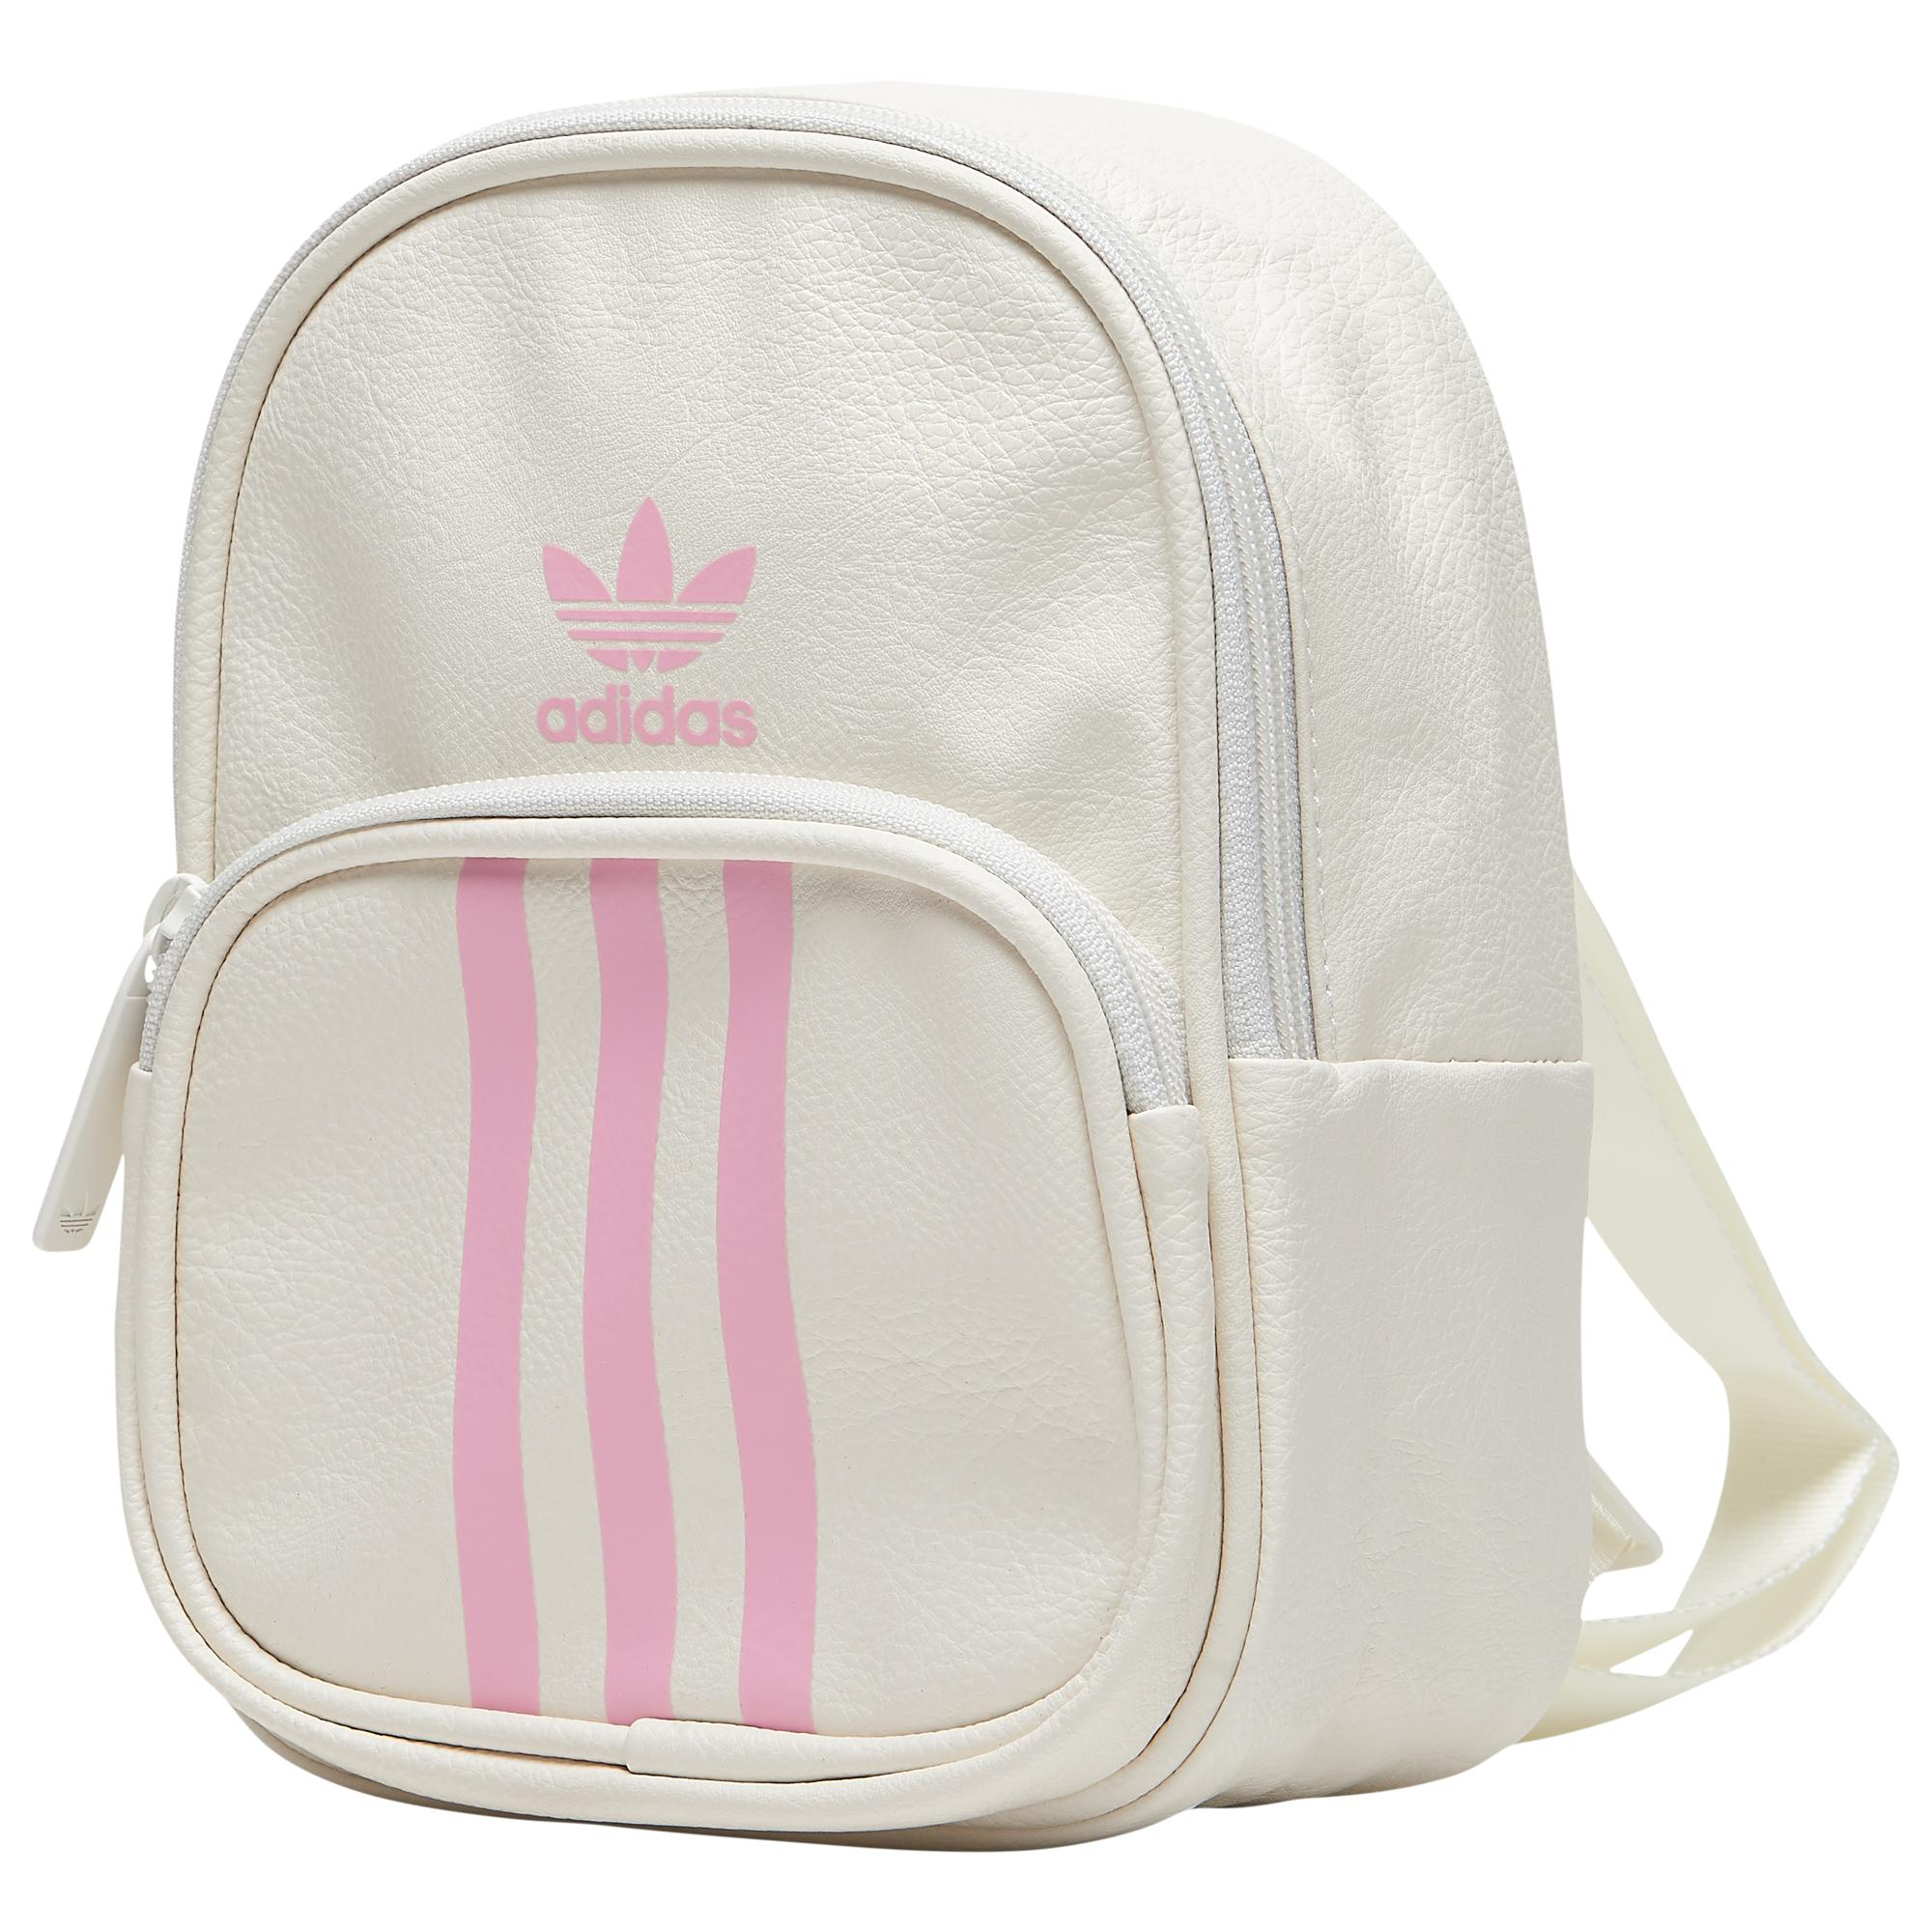 Adidas - White Originals Santiago Vday Mini Backpack - Lyst. View fullscreen 056eb4188f5fd